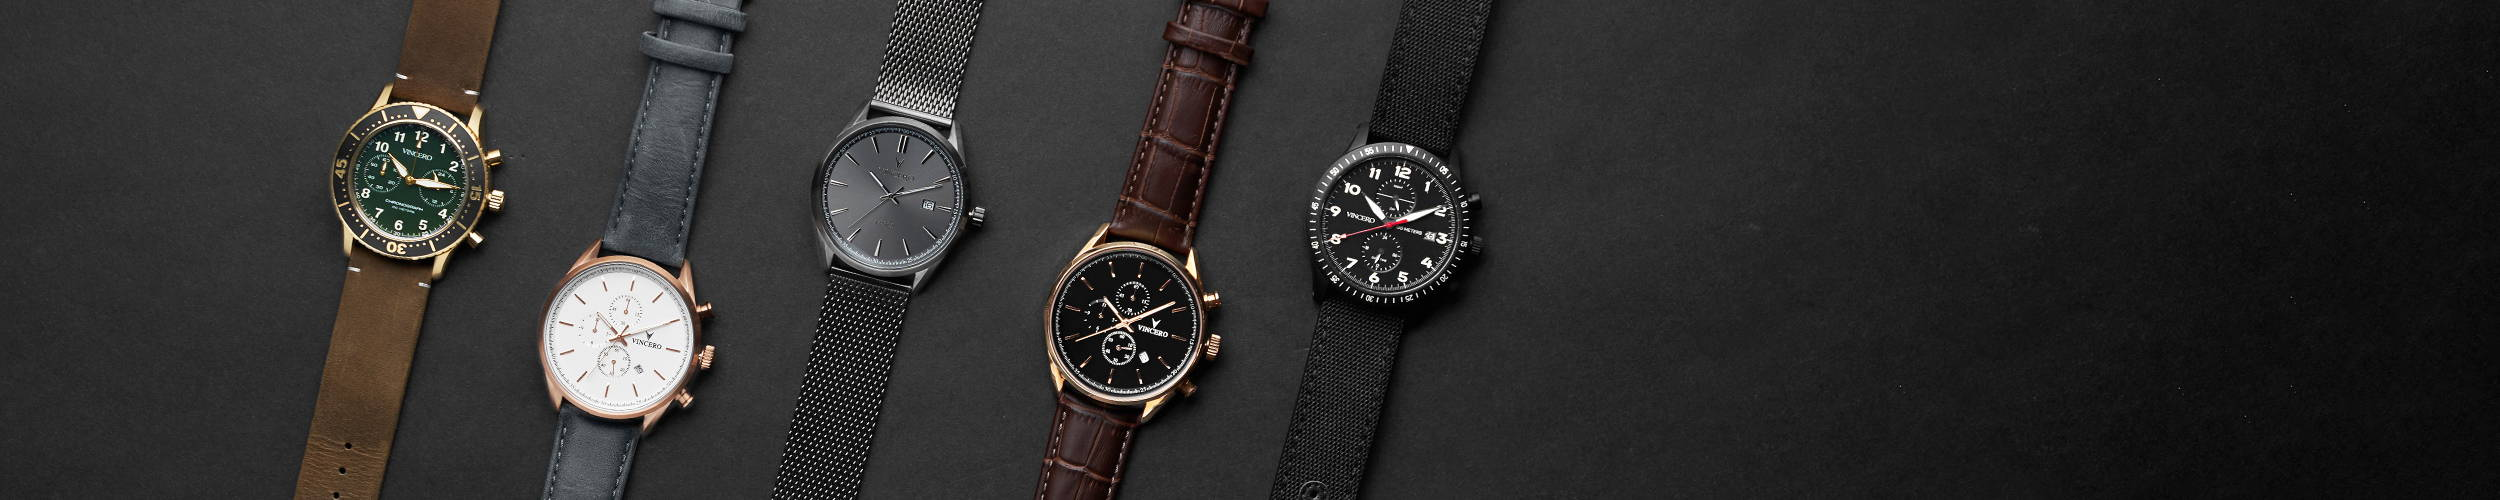 Series of watches laying down on black background